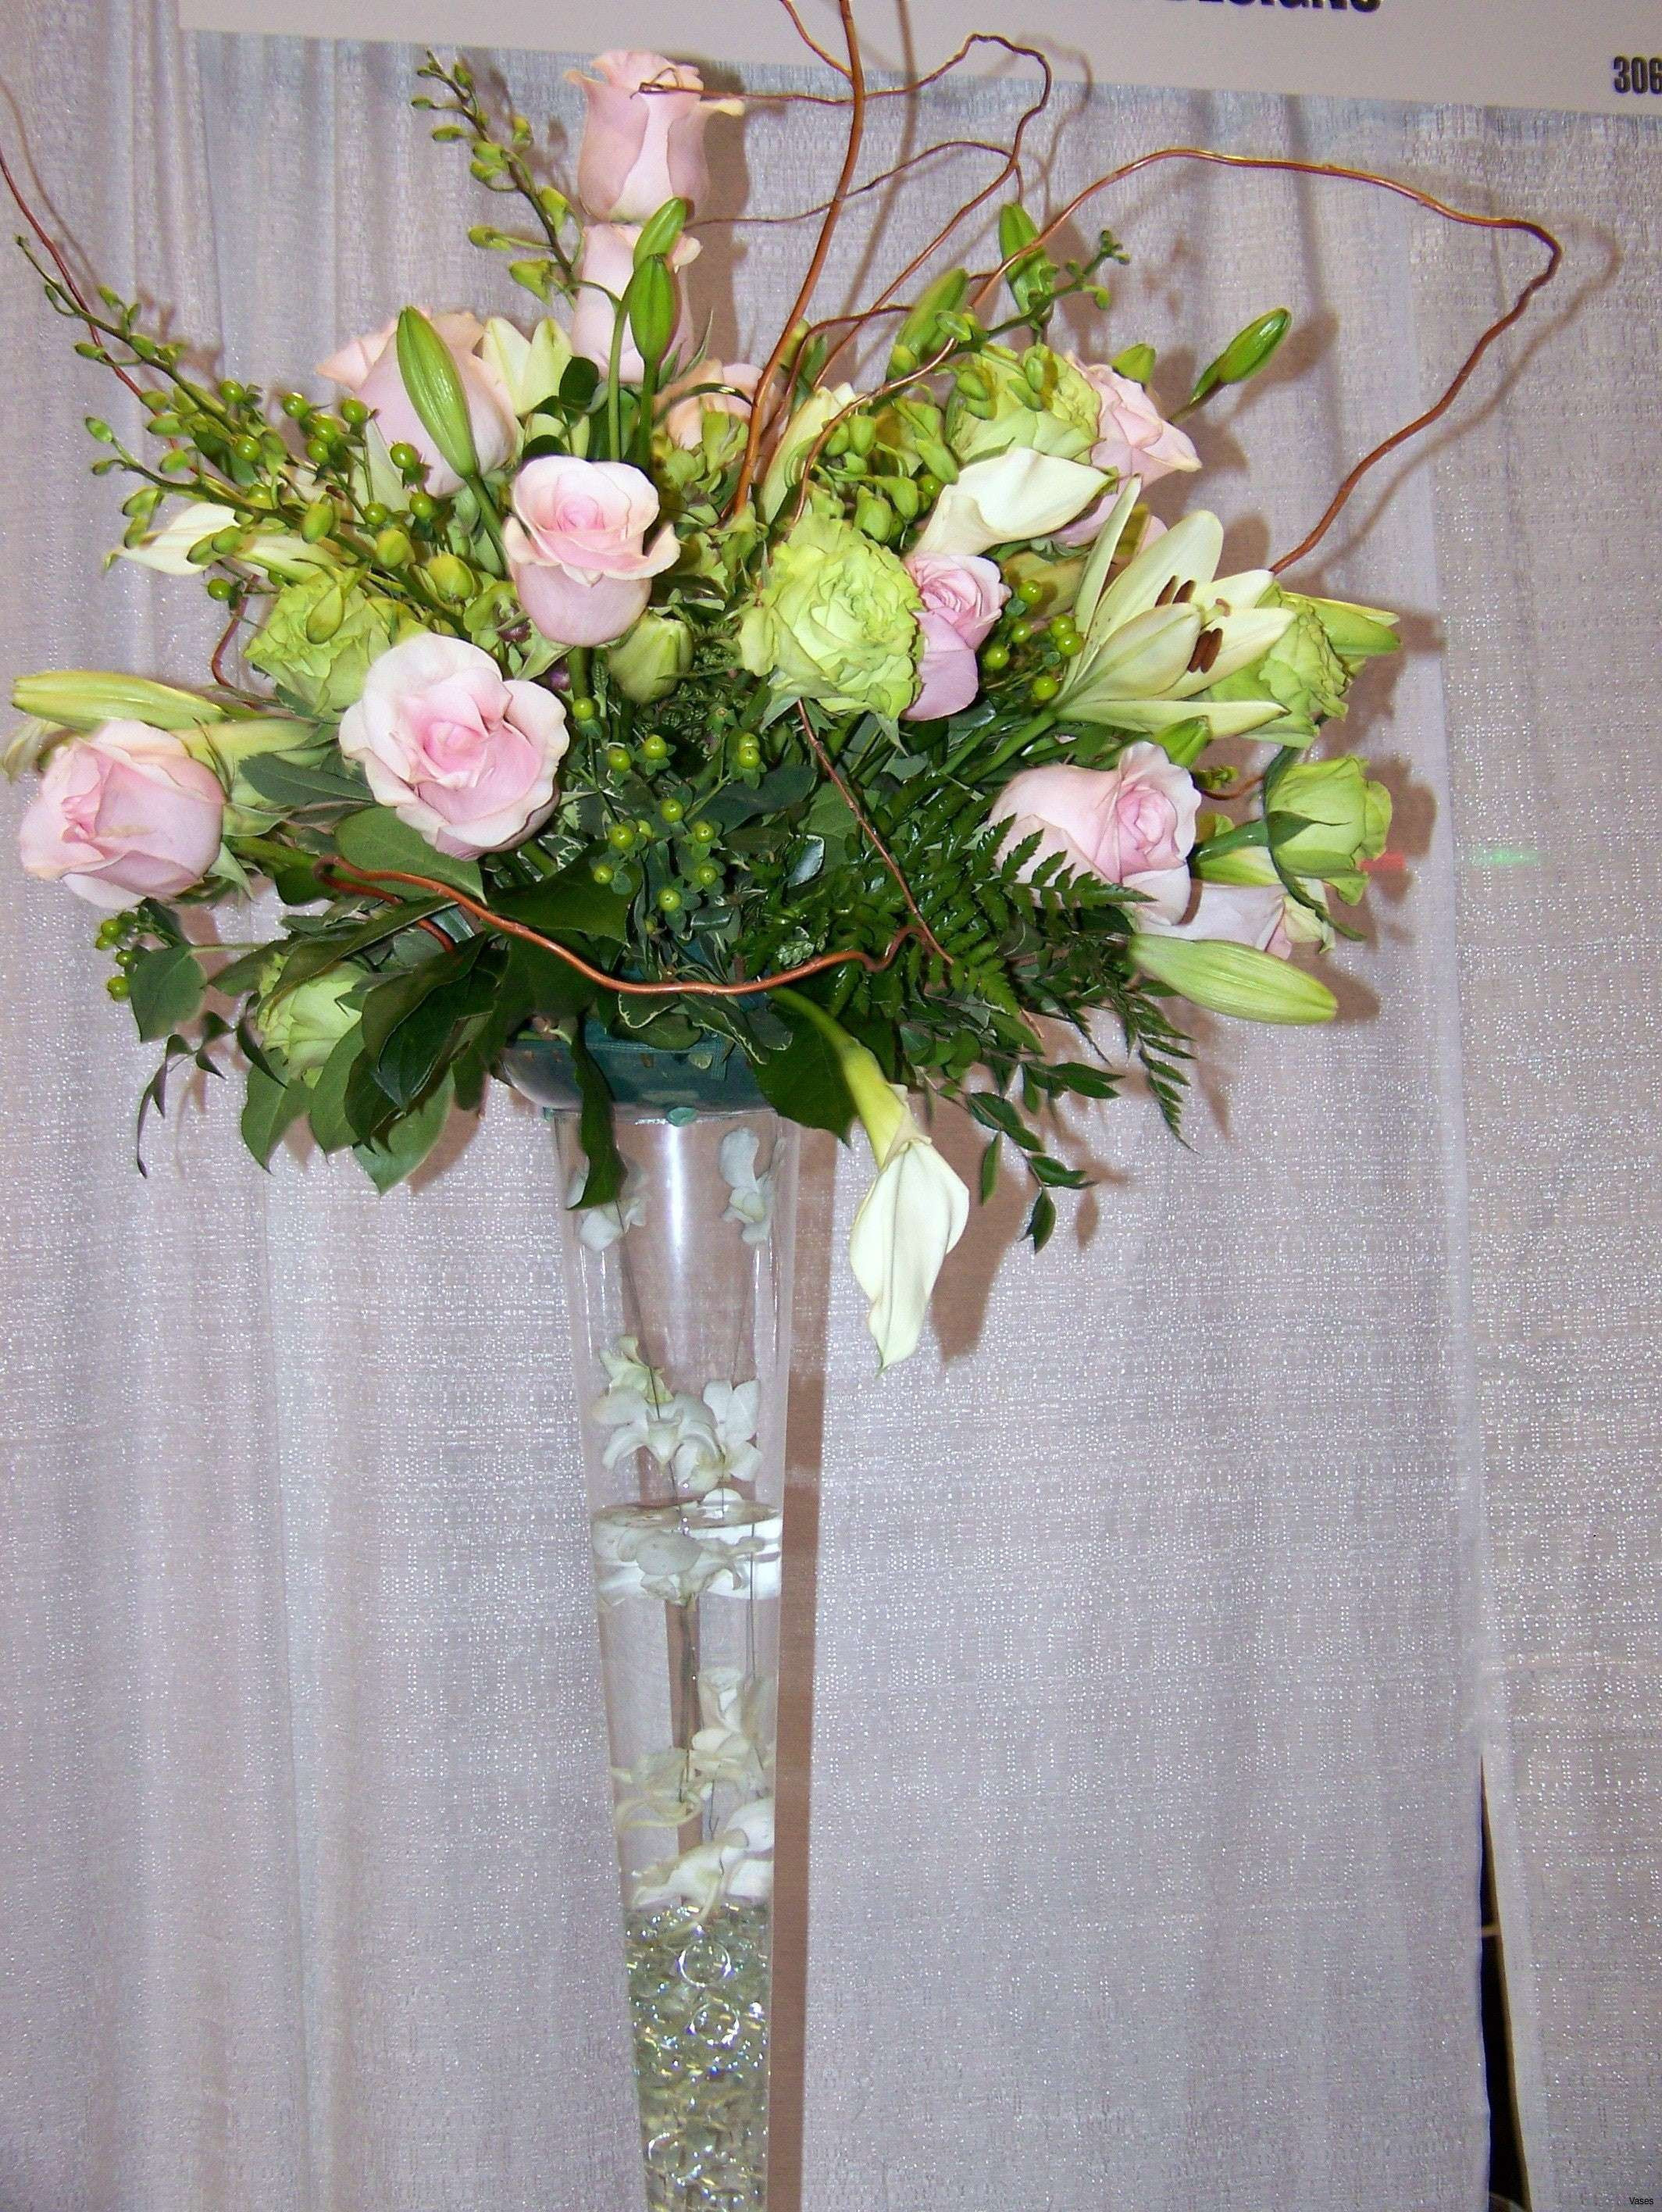 H Vases Ideas for Floral Arrangements In I 0d Design Ideas Design Design Ideas Wall